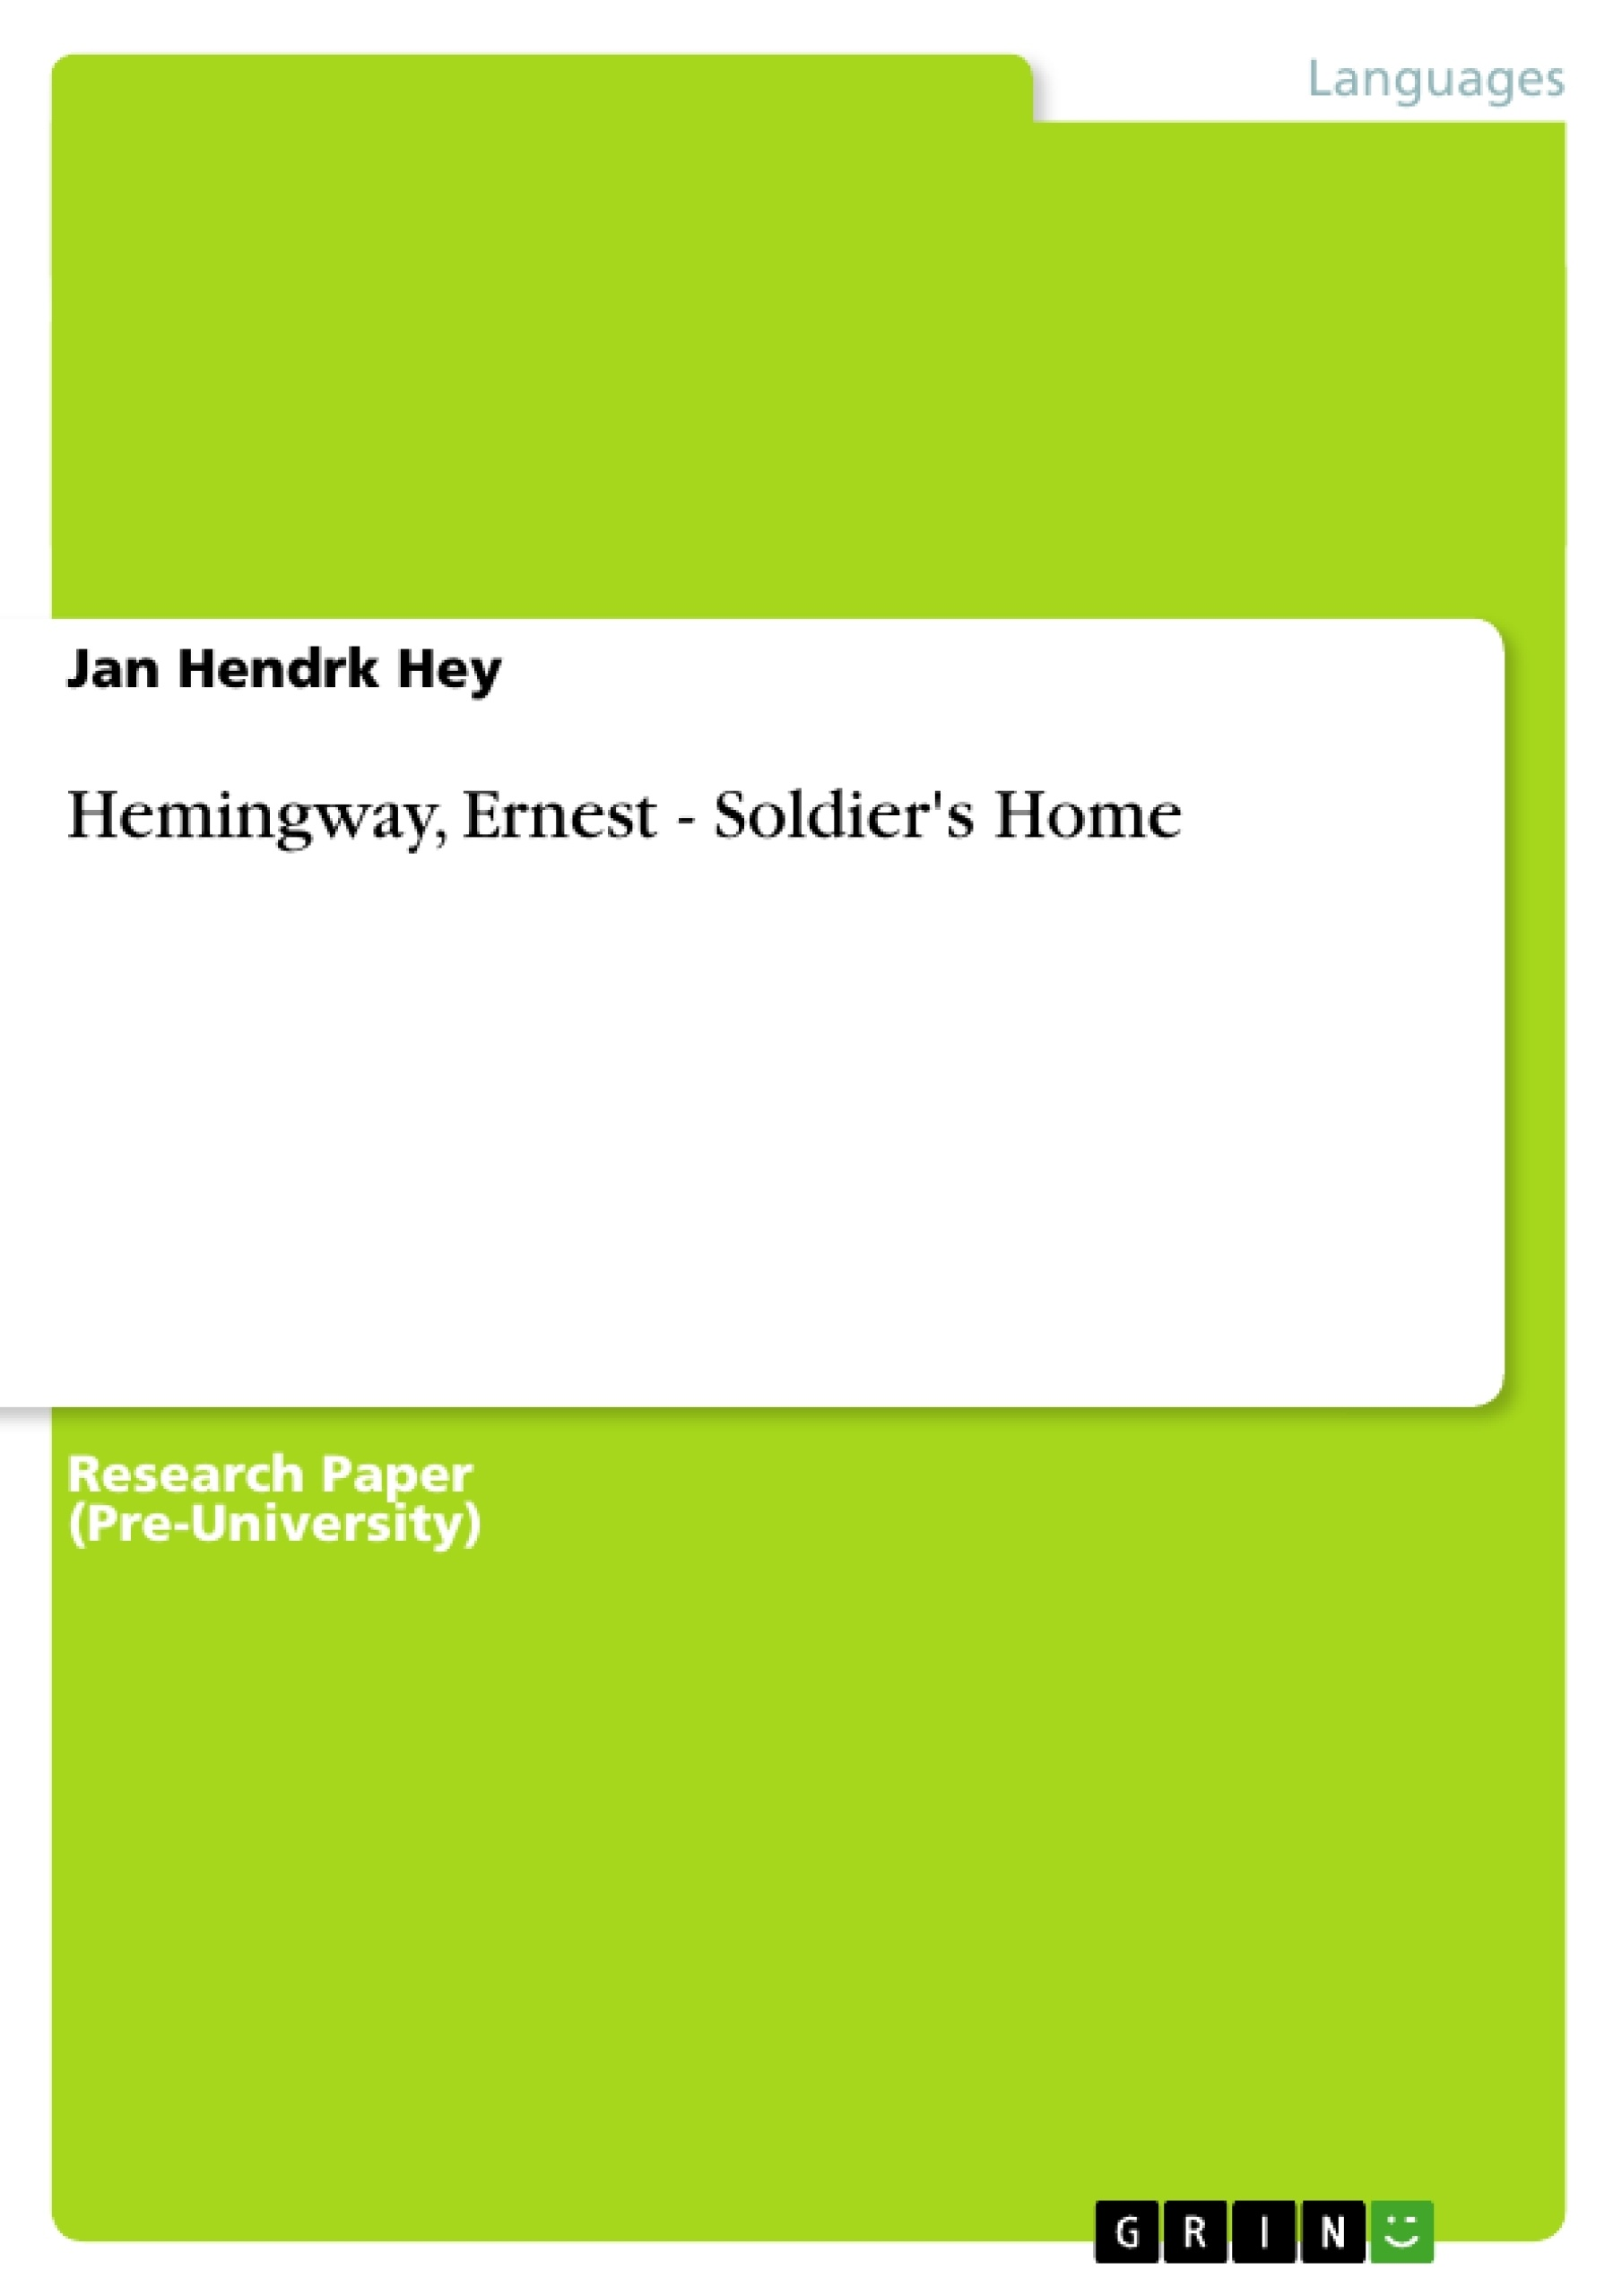 hemingway ernest ier s home publish your master s thesis hemingway ernest ier s home publish your master s thesis bachelor s thesis essay or term paper